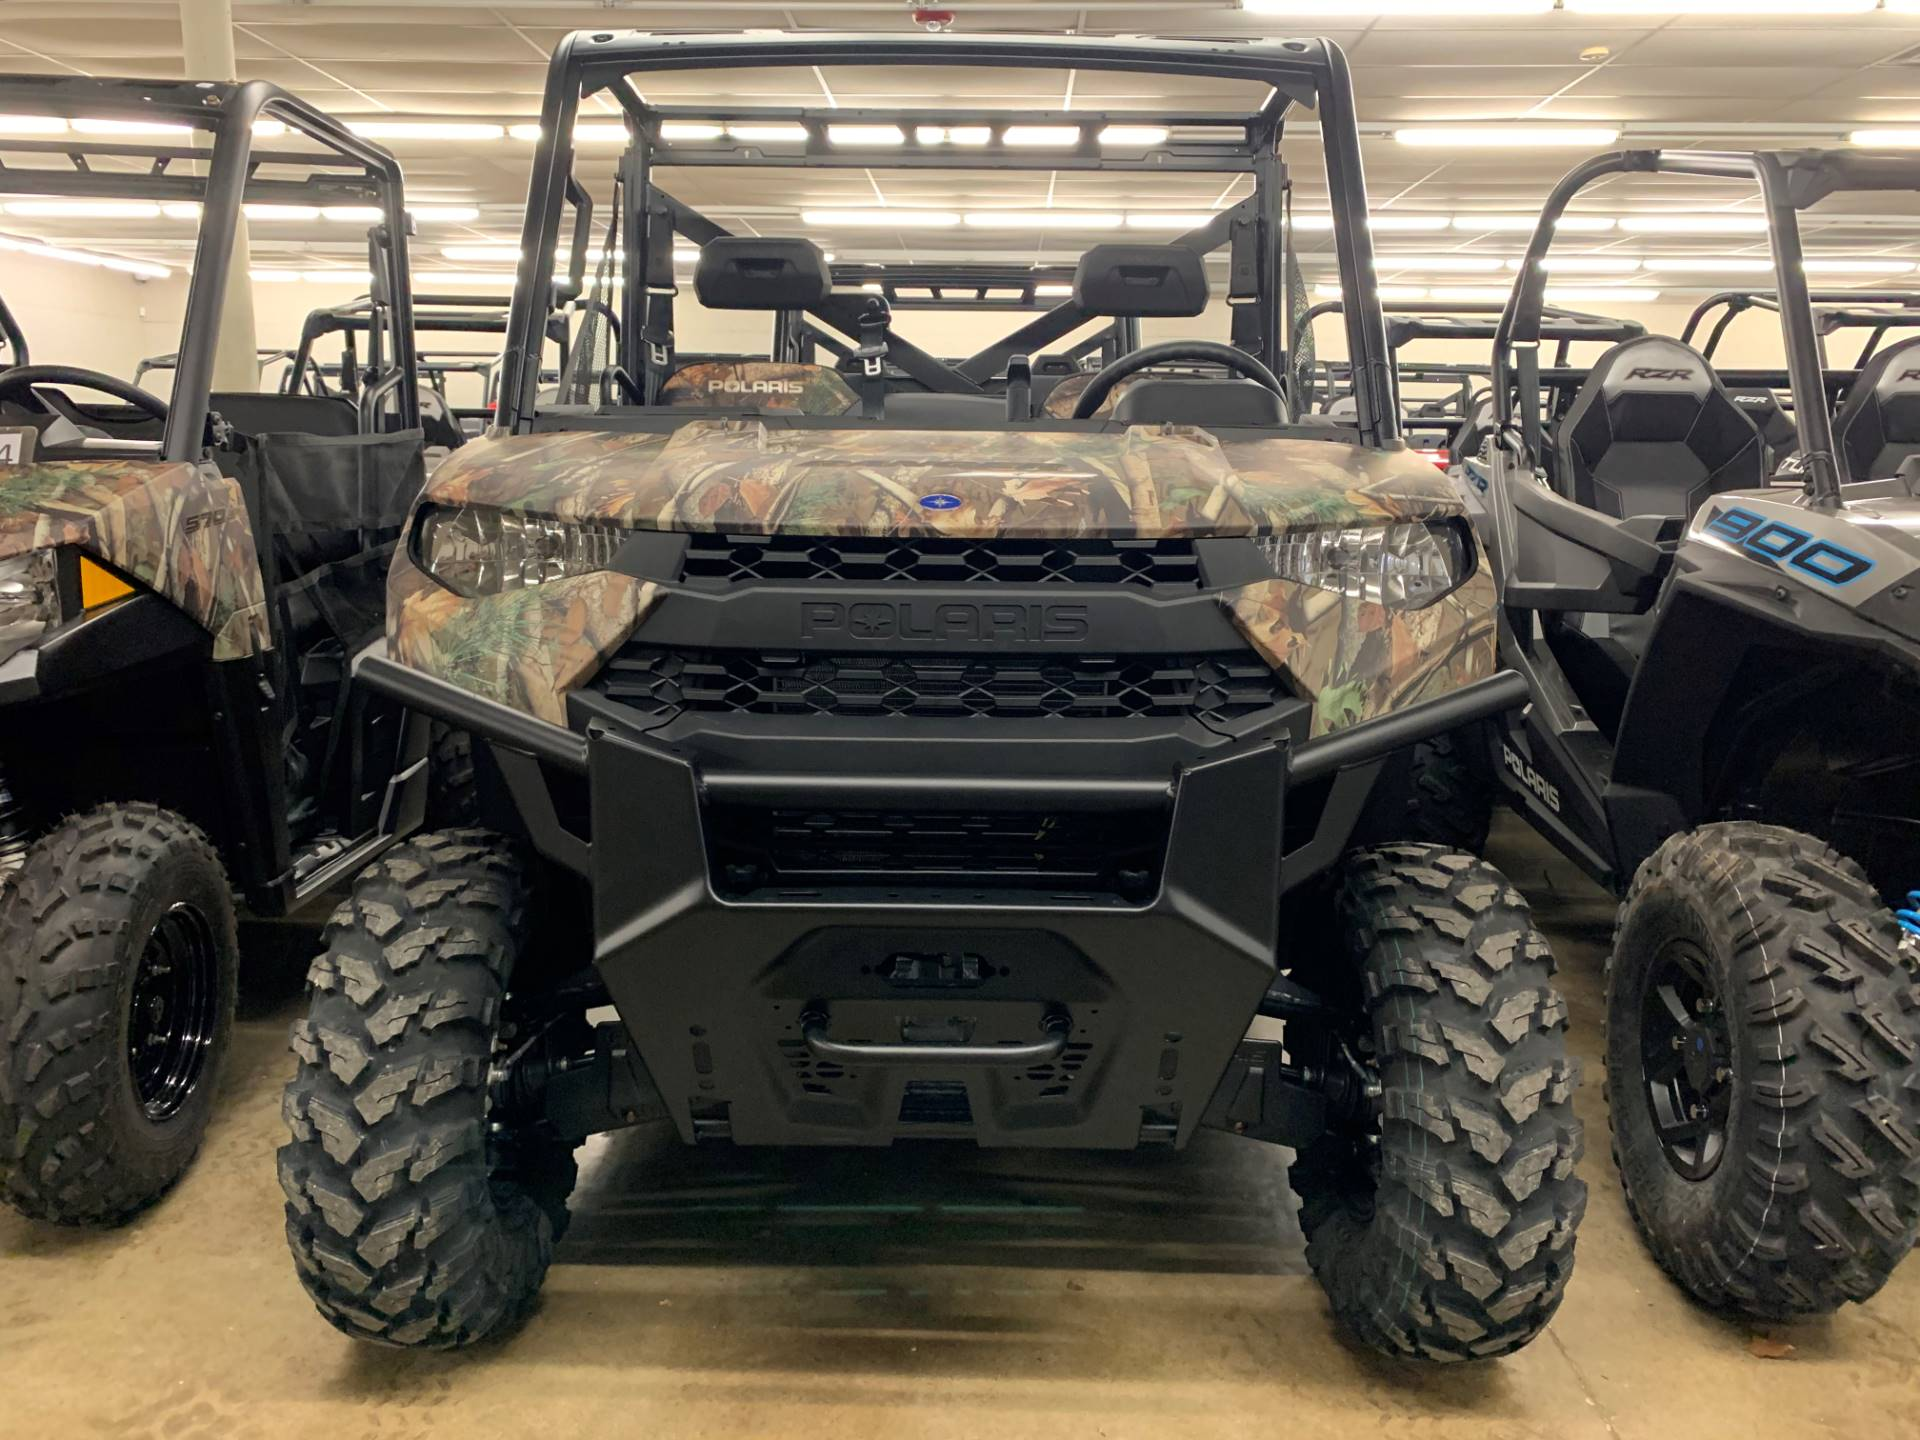 2020 Polaris Ranger XP 1000 Premium in Beaver Falls, Pennsylvania - Photo 2